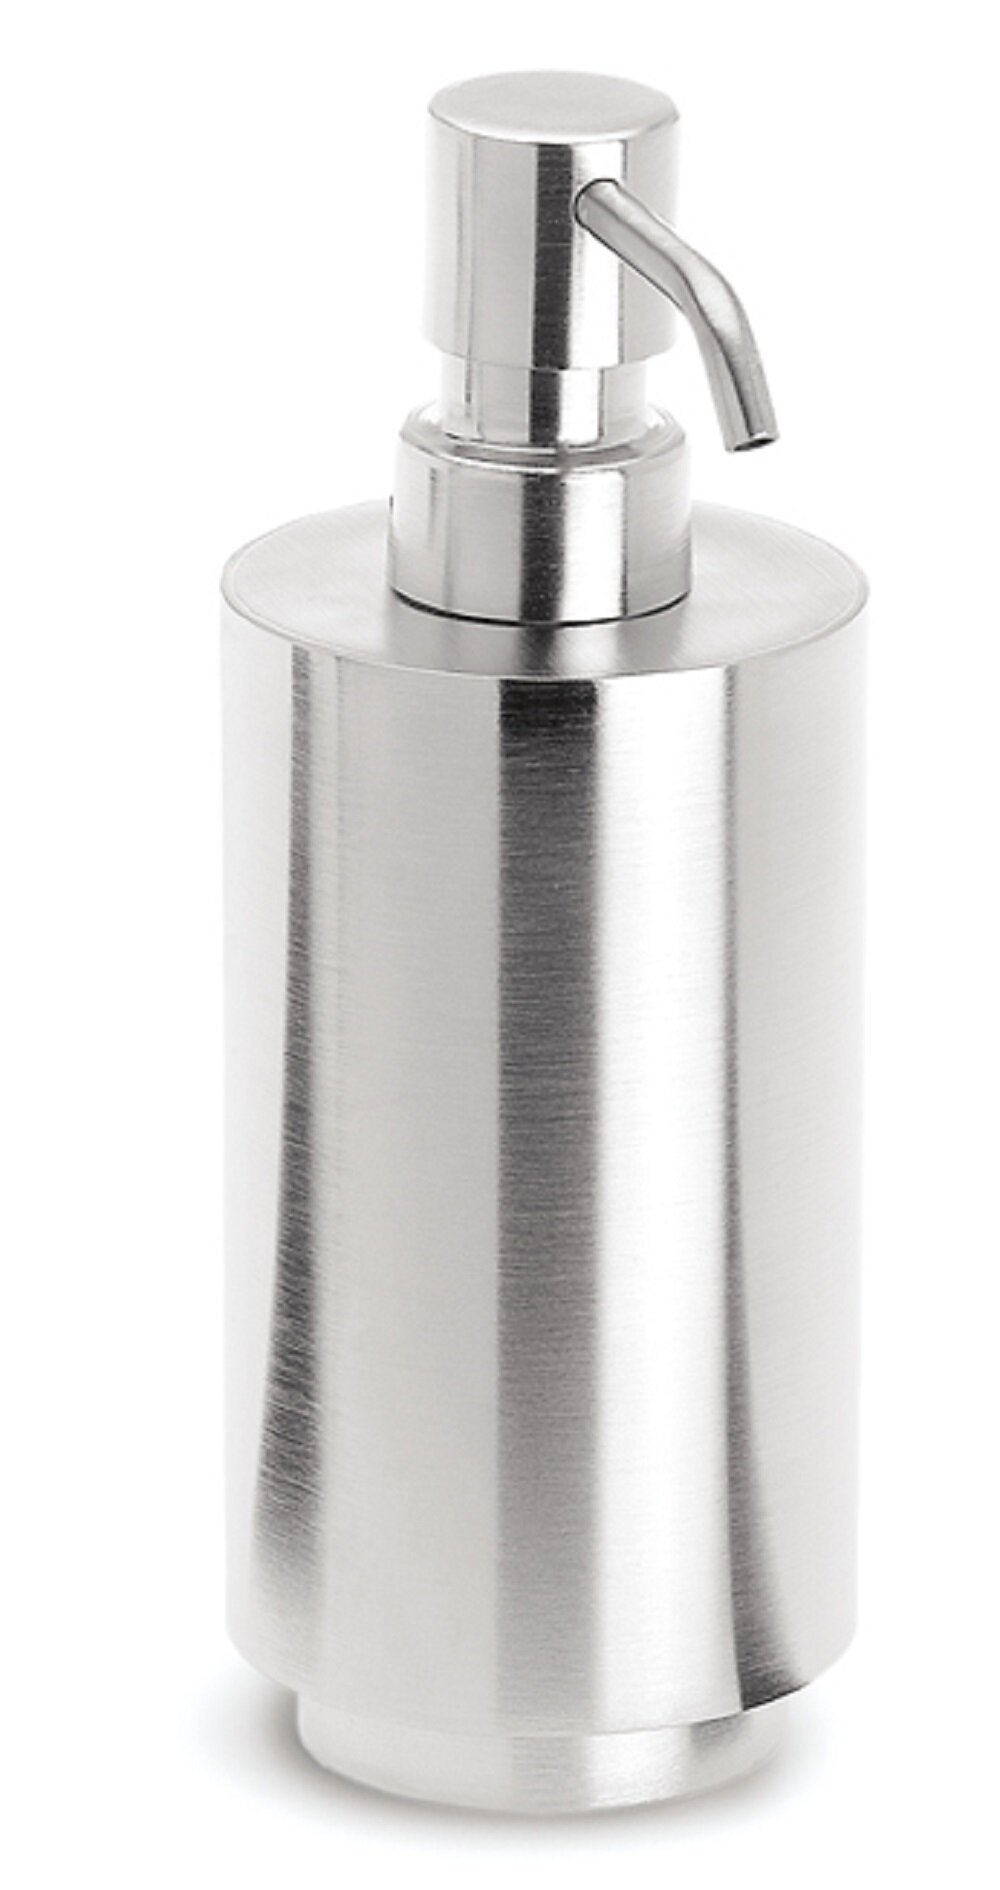 Primo Soap Dispenser & Reviews | AllModern